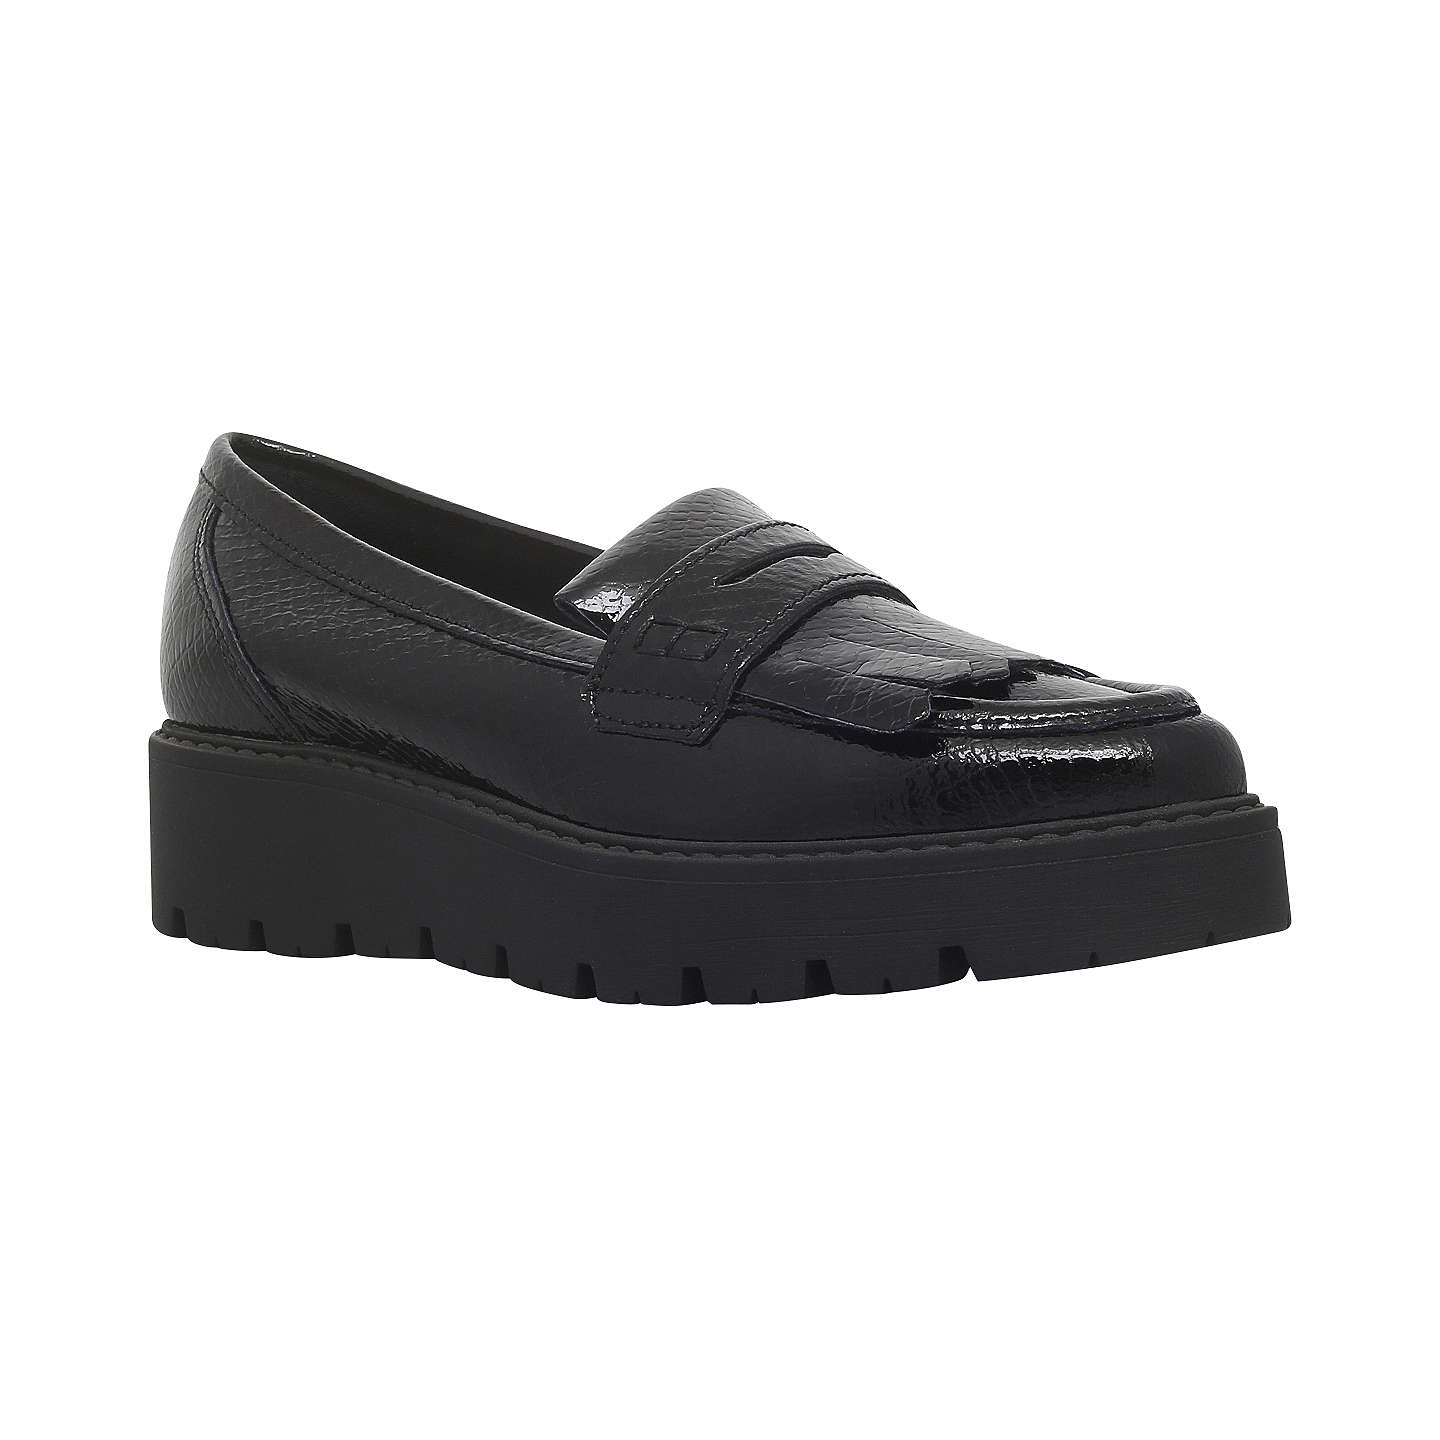 BuyKurt Geiger Kompton Flatform Loafers, Black, 3 Online at johnlewis.com  ...